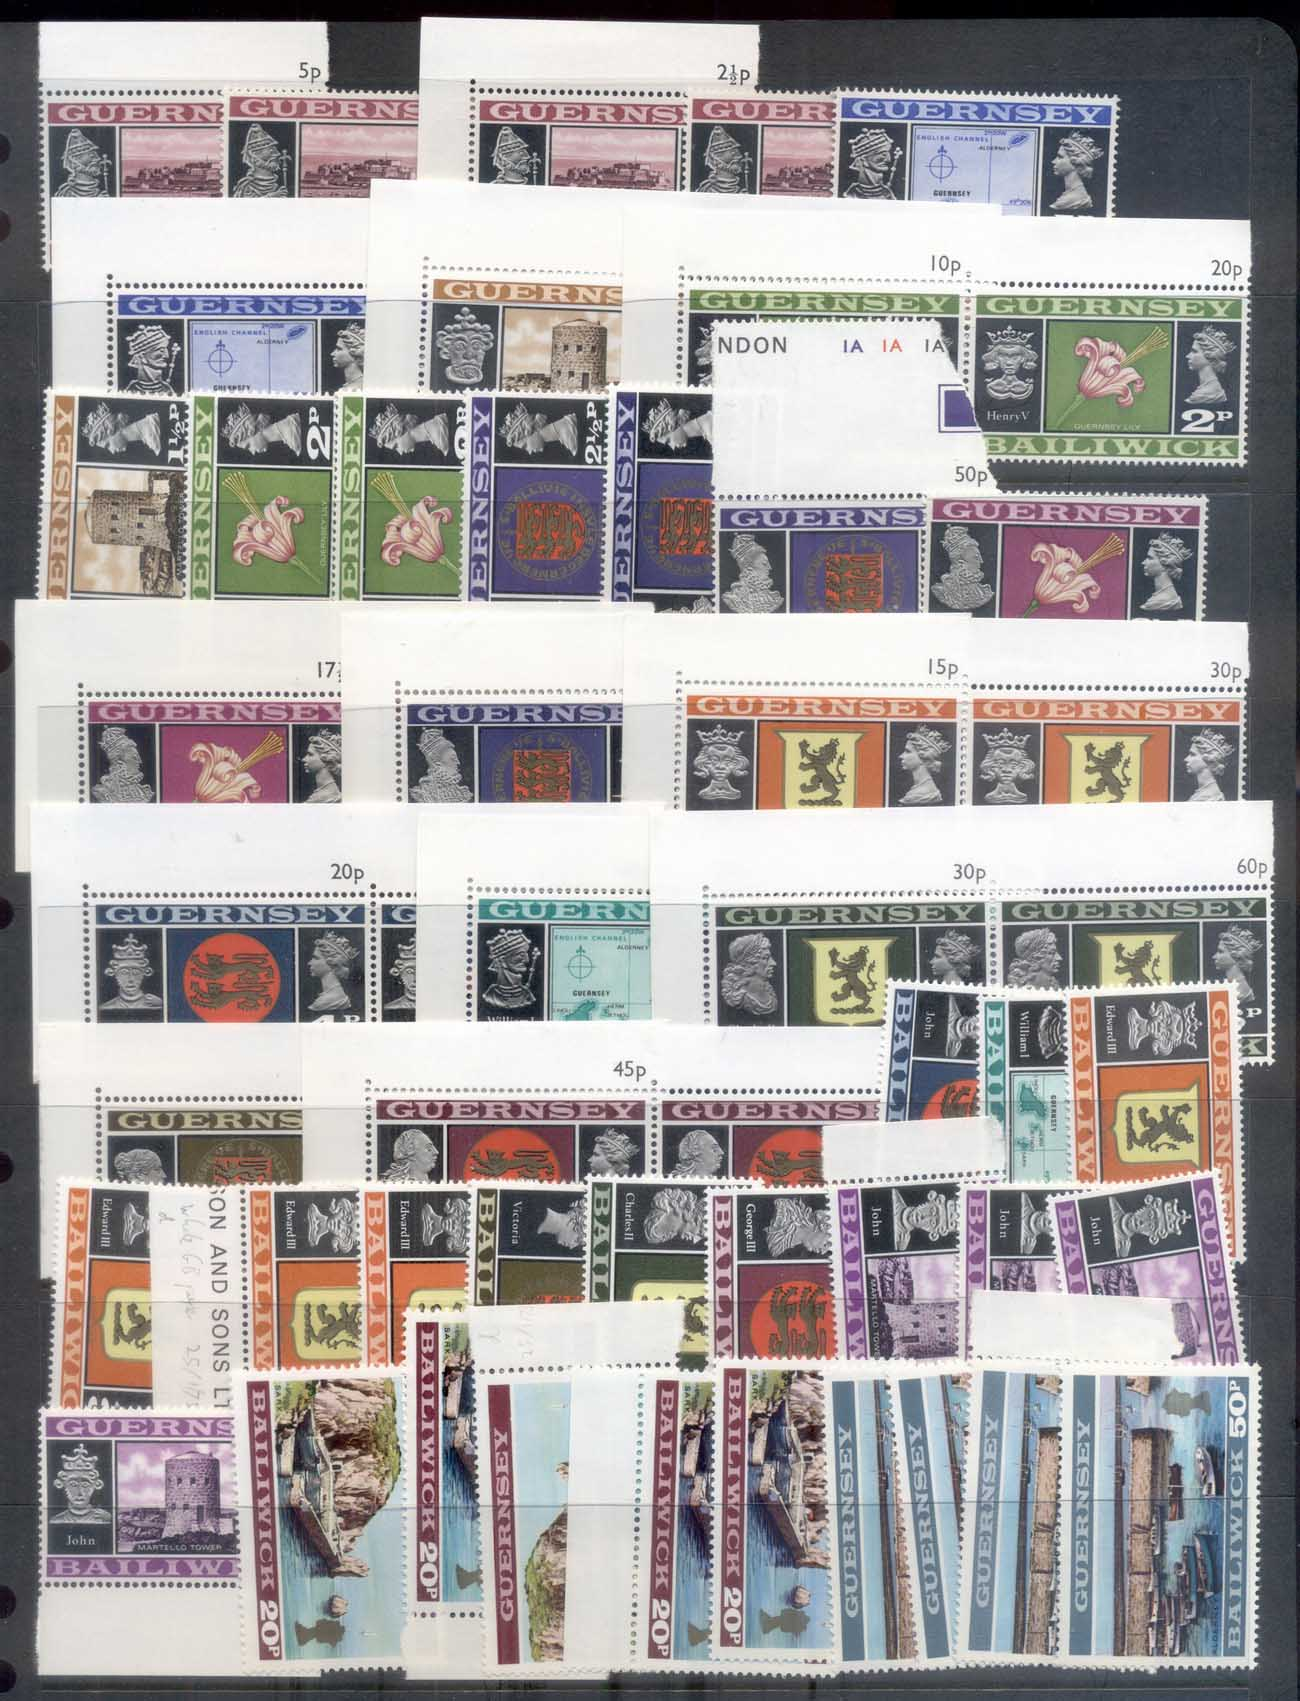 Guernsey 1971 QEII Pictorials, Views, Assorted Oddments MUH